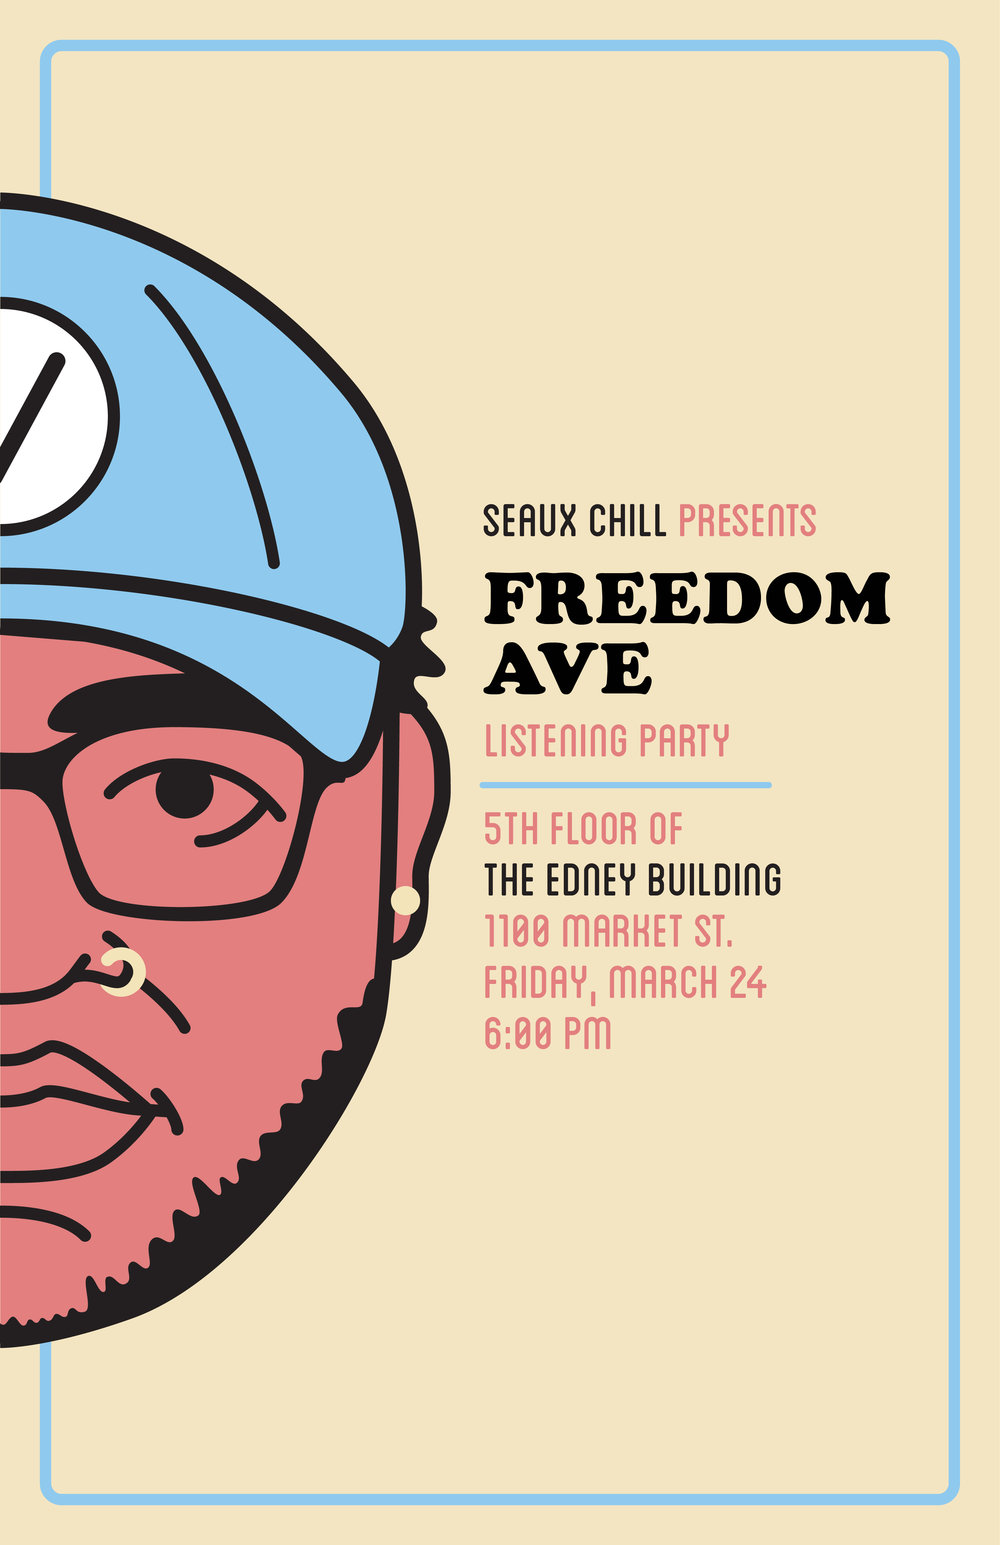 Freedom Ave Listening Party Poster_Image-02.jpg